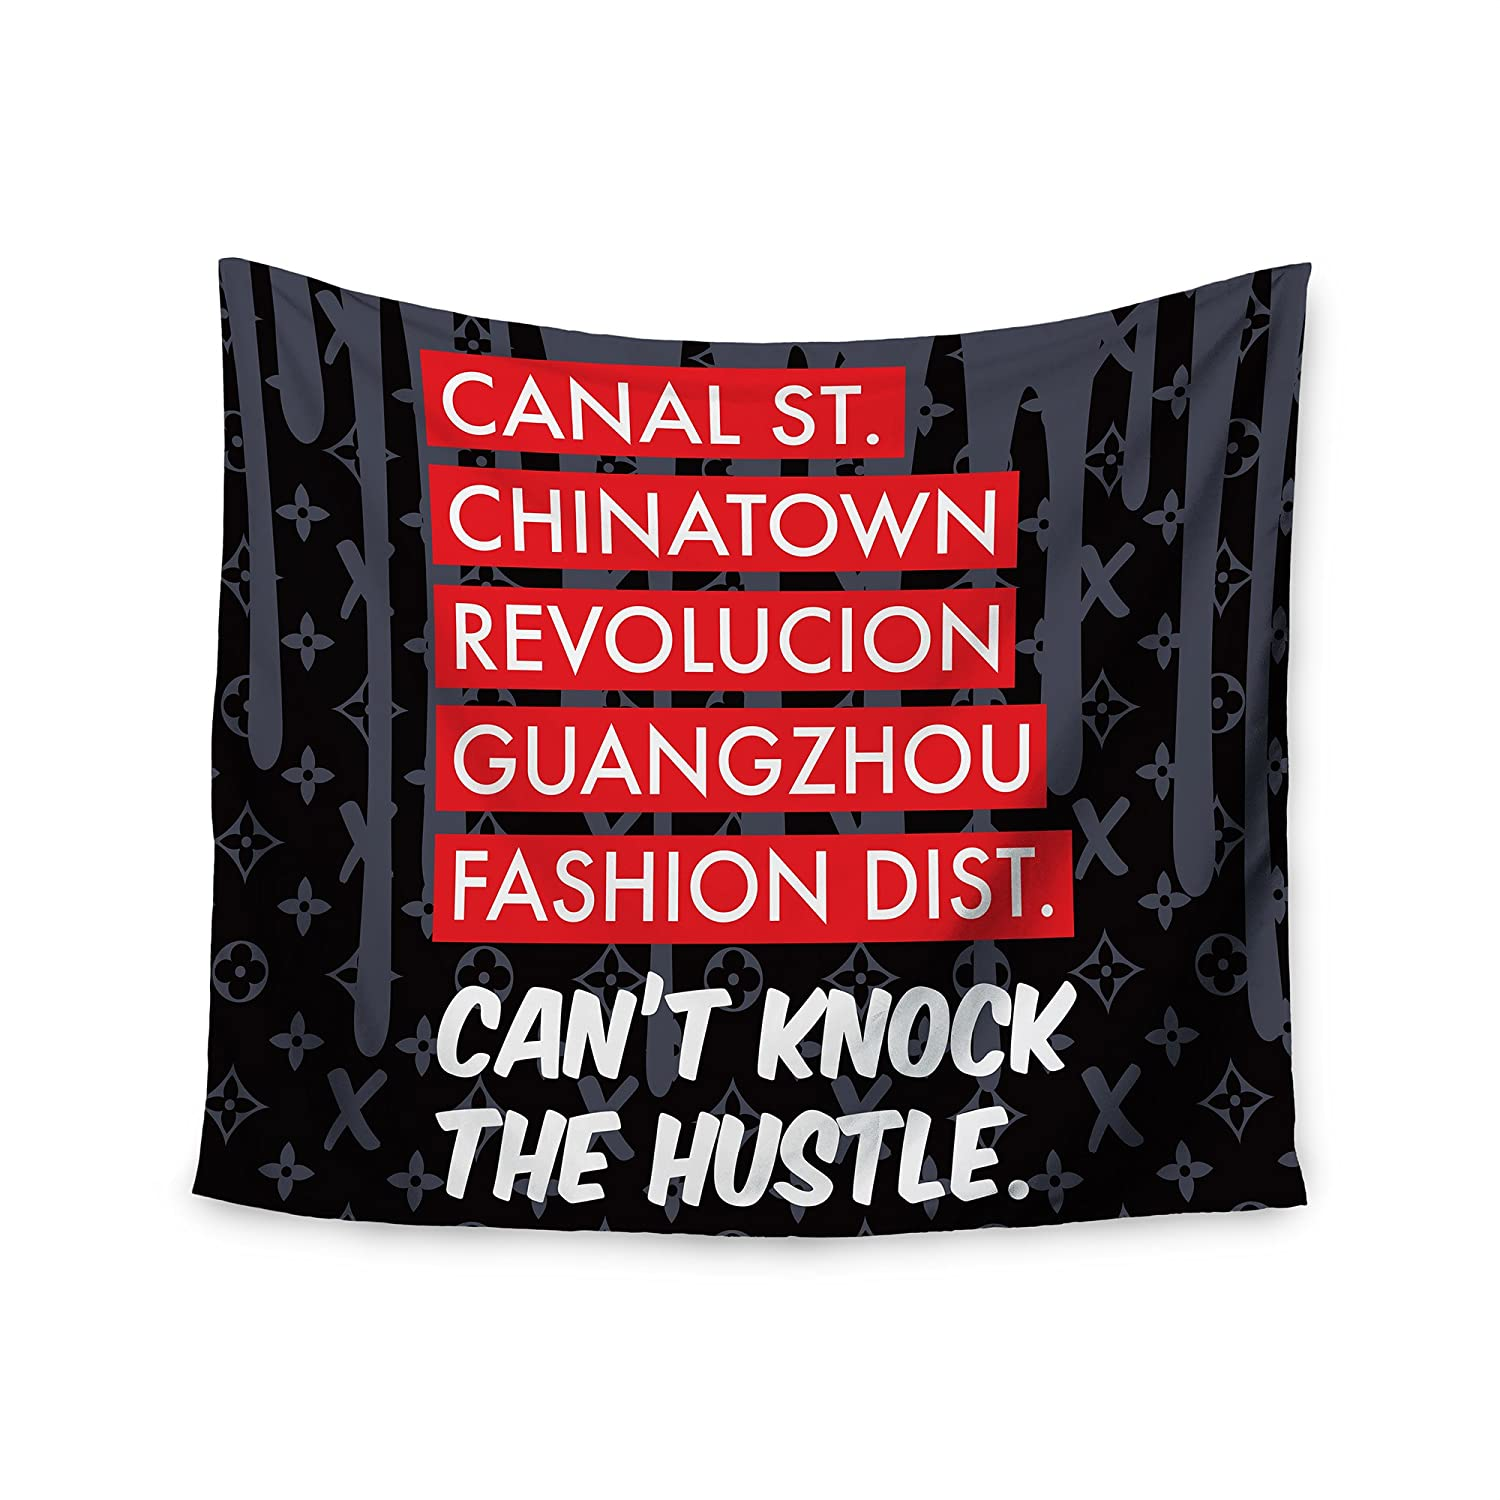 68 x 80 KESS InHouse Just L Cant Knock The Hustle Blk Red Urban Wall Tapestry